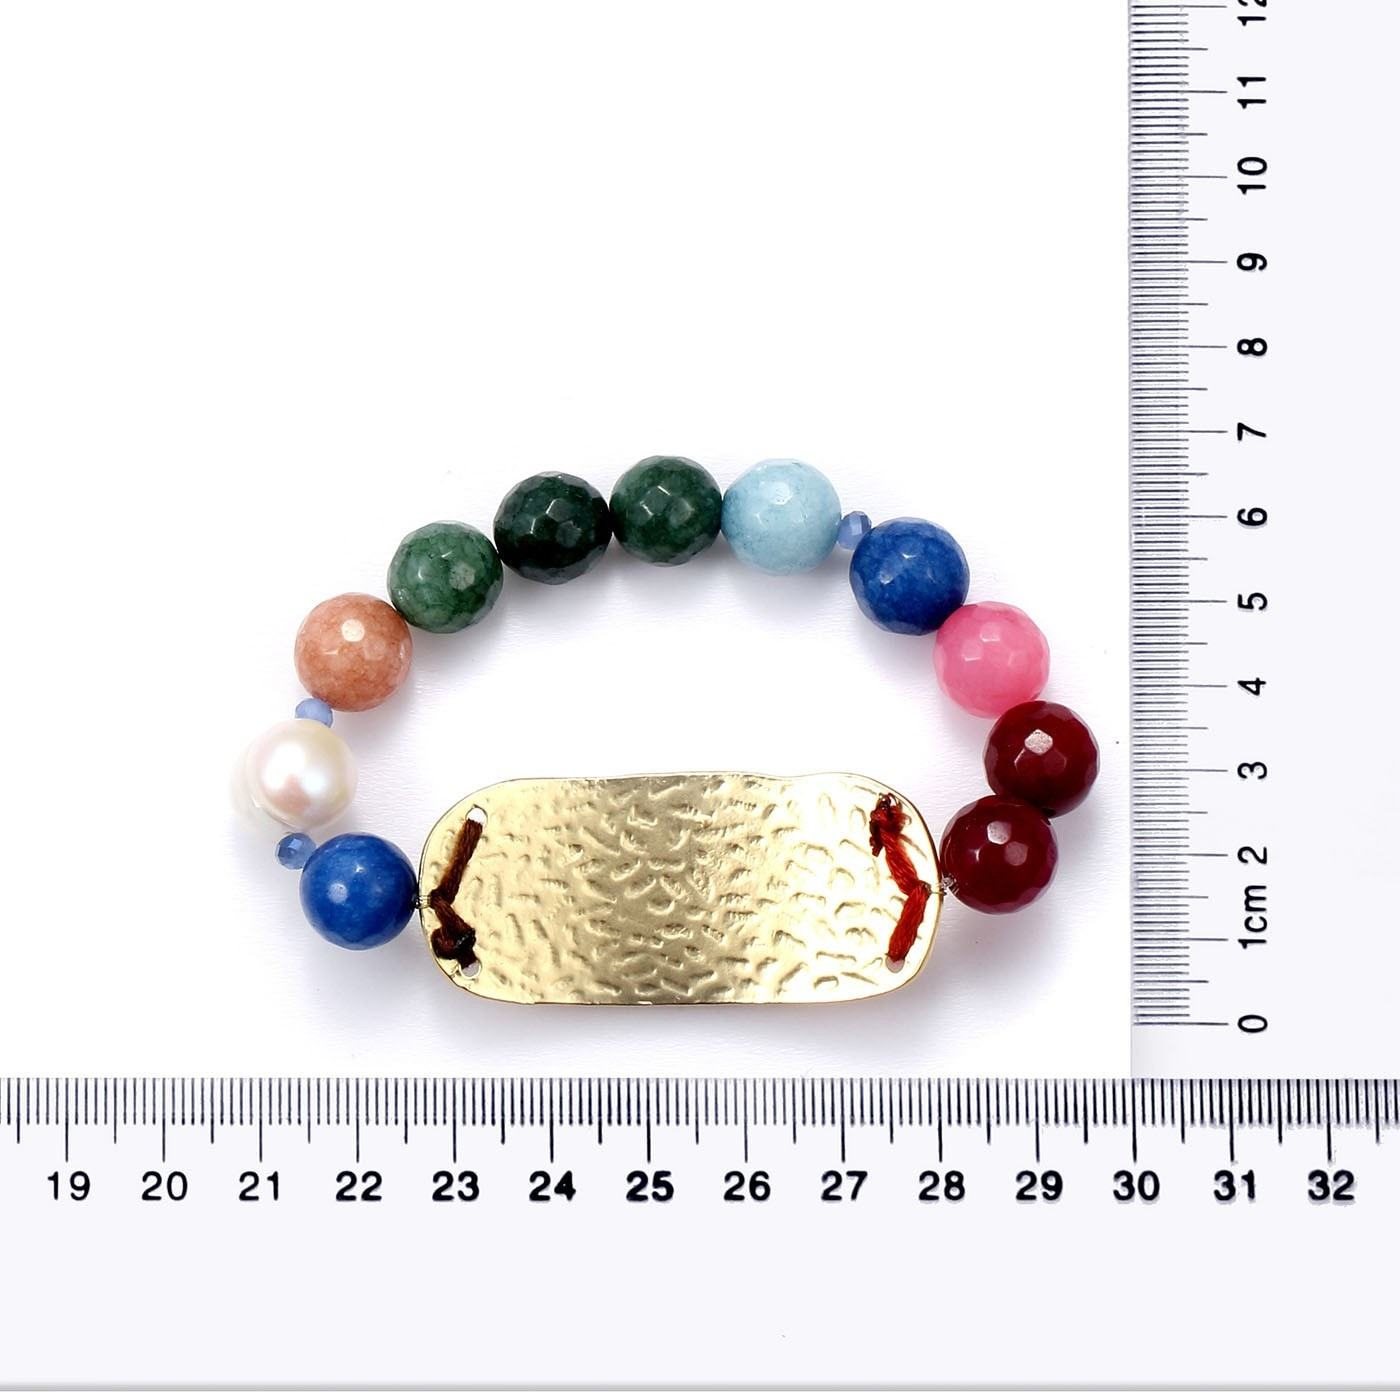 Vibrant Vibes Real Gemstone Beads Bracelet-Blinglane